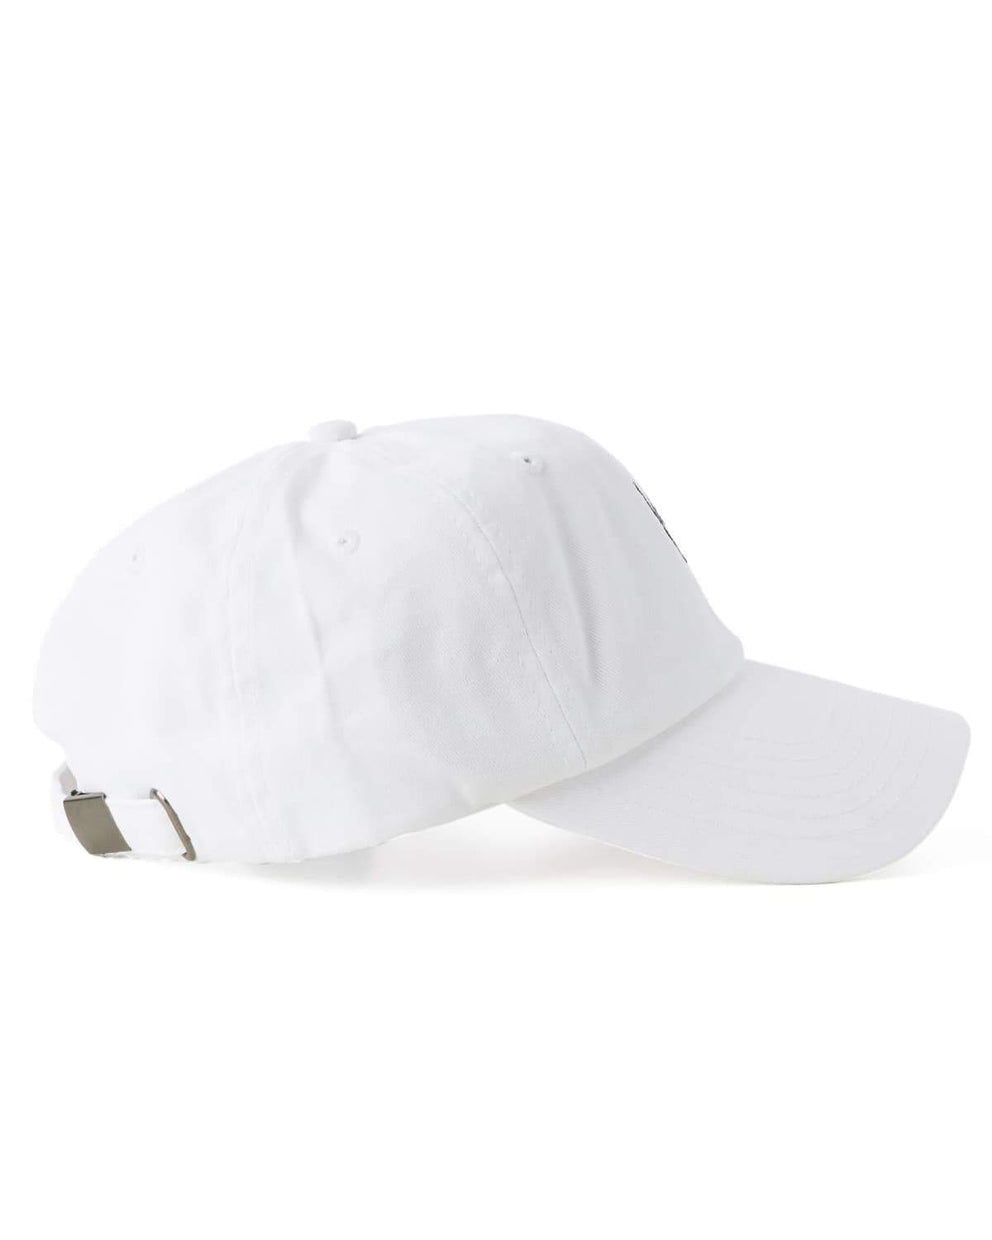 'Squiggles' Dad Hat